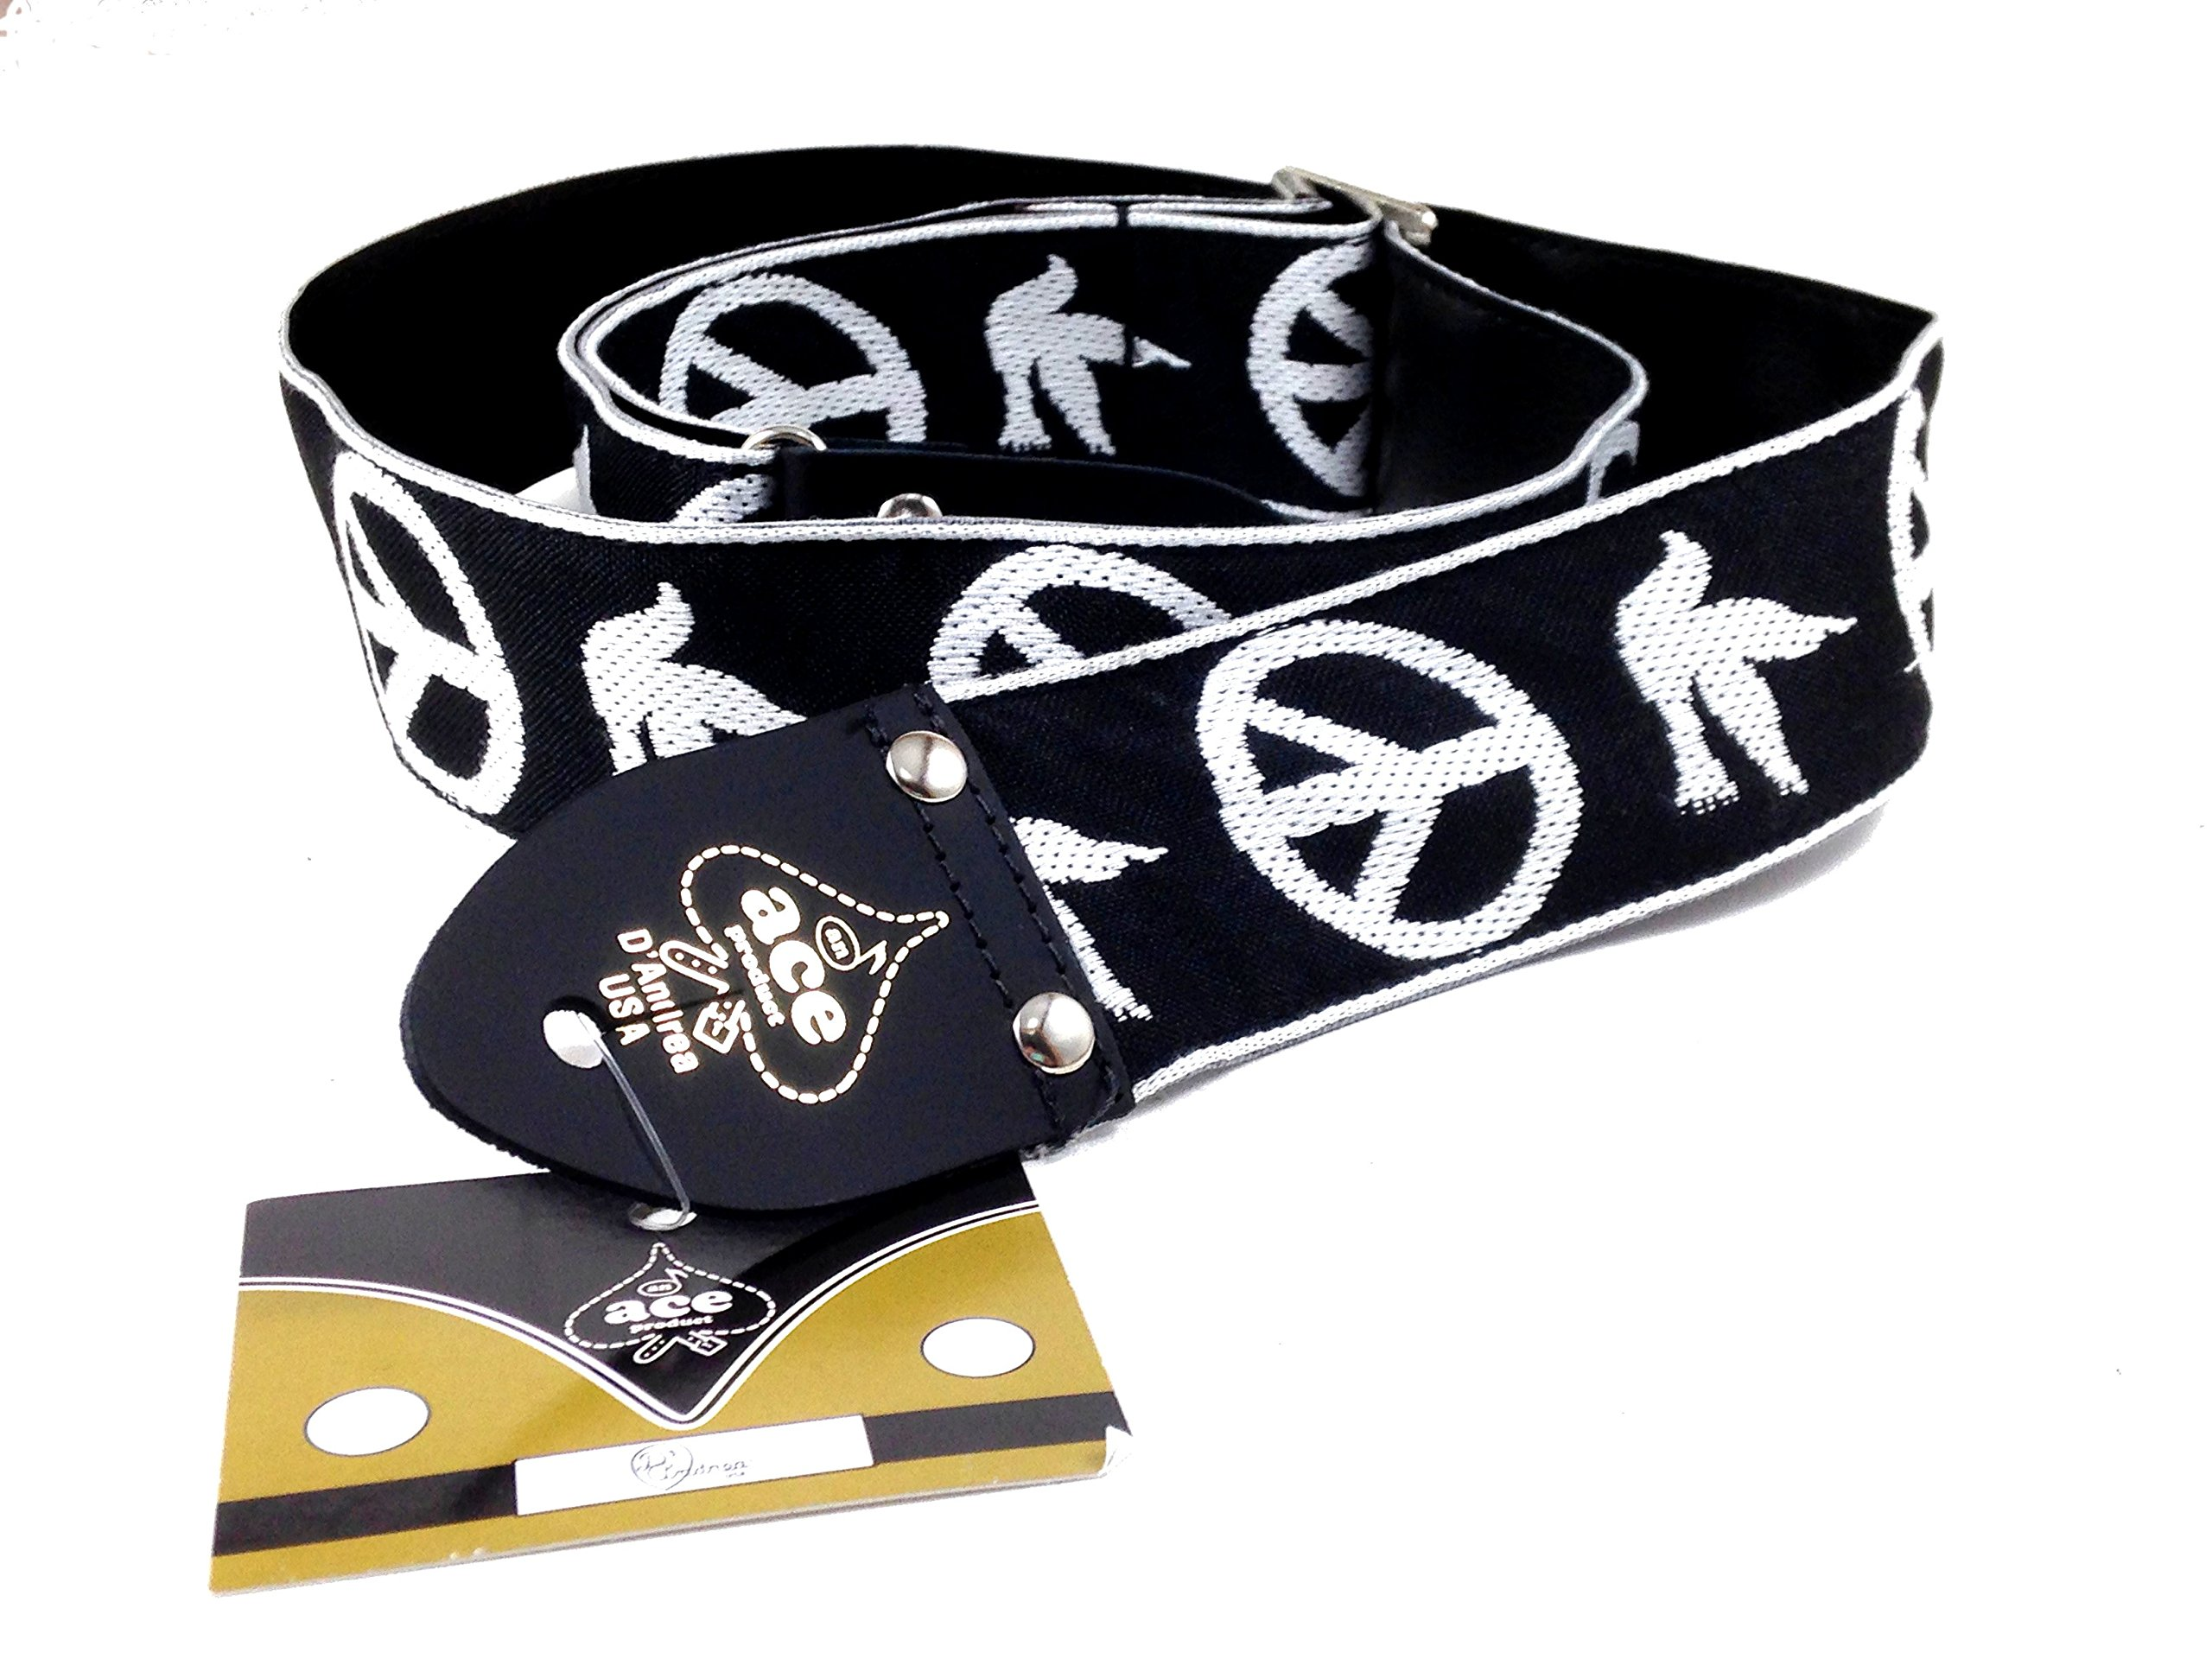 D'Andrea Ace Vintage Reissue Guitar Strap - Peace-Dove - Replica of Guitar Strap used by Neil Young by D'Andrea